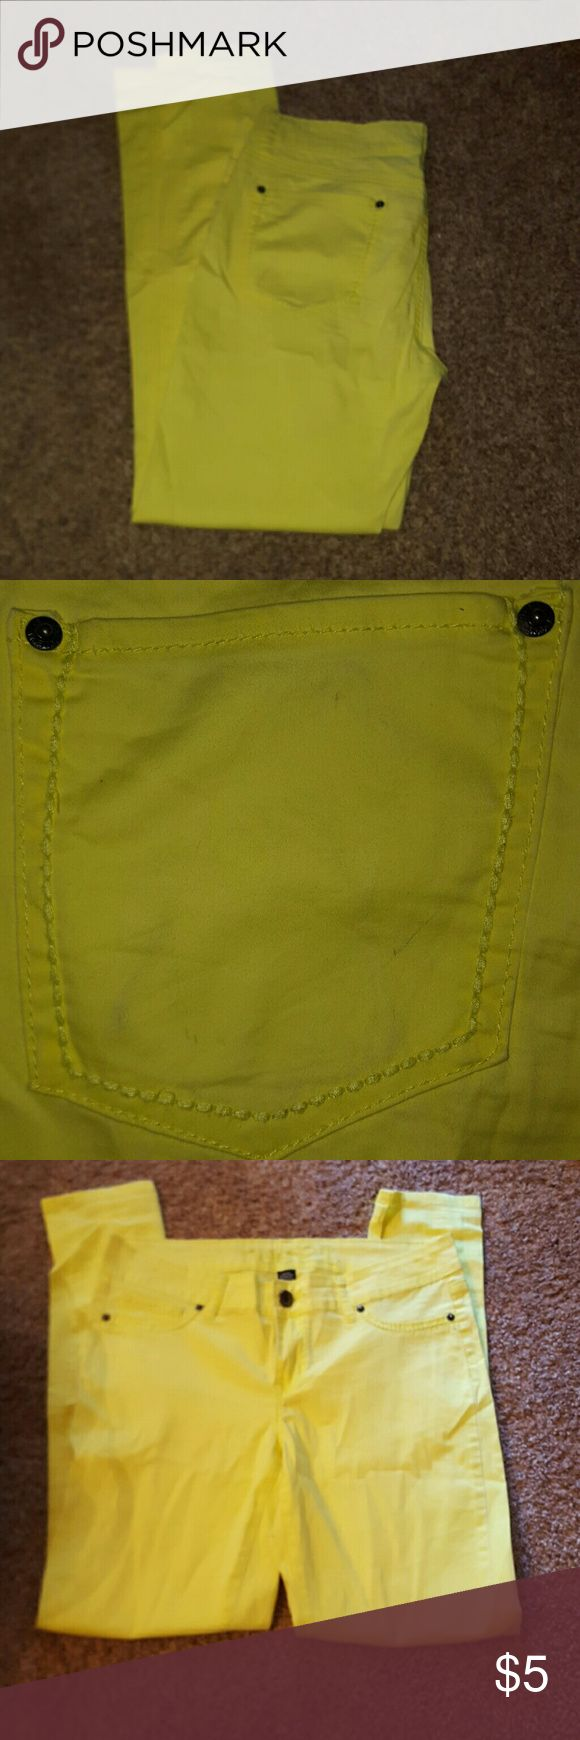 Rue 21 yellow skinny jeans Rue 21 yellow skinny jeans  Size 9/10 These do have faint stains on the butt shown in pictures. Rue 21 Pants Skinny